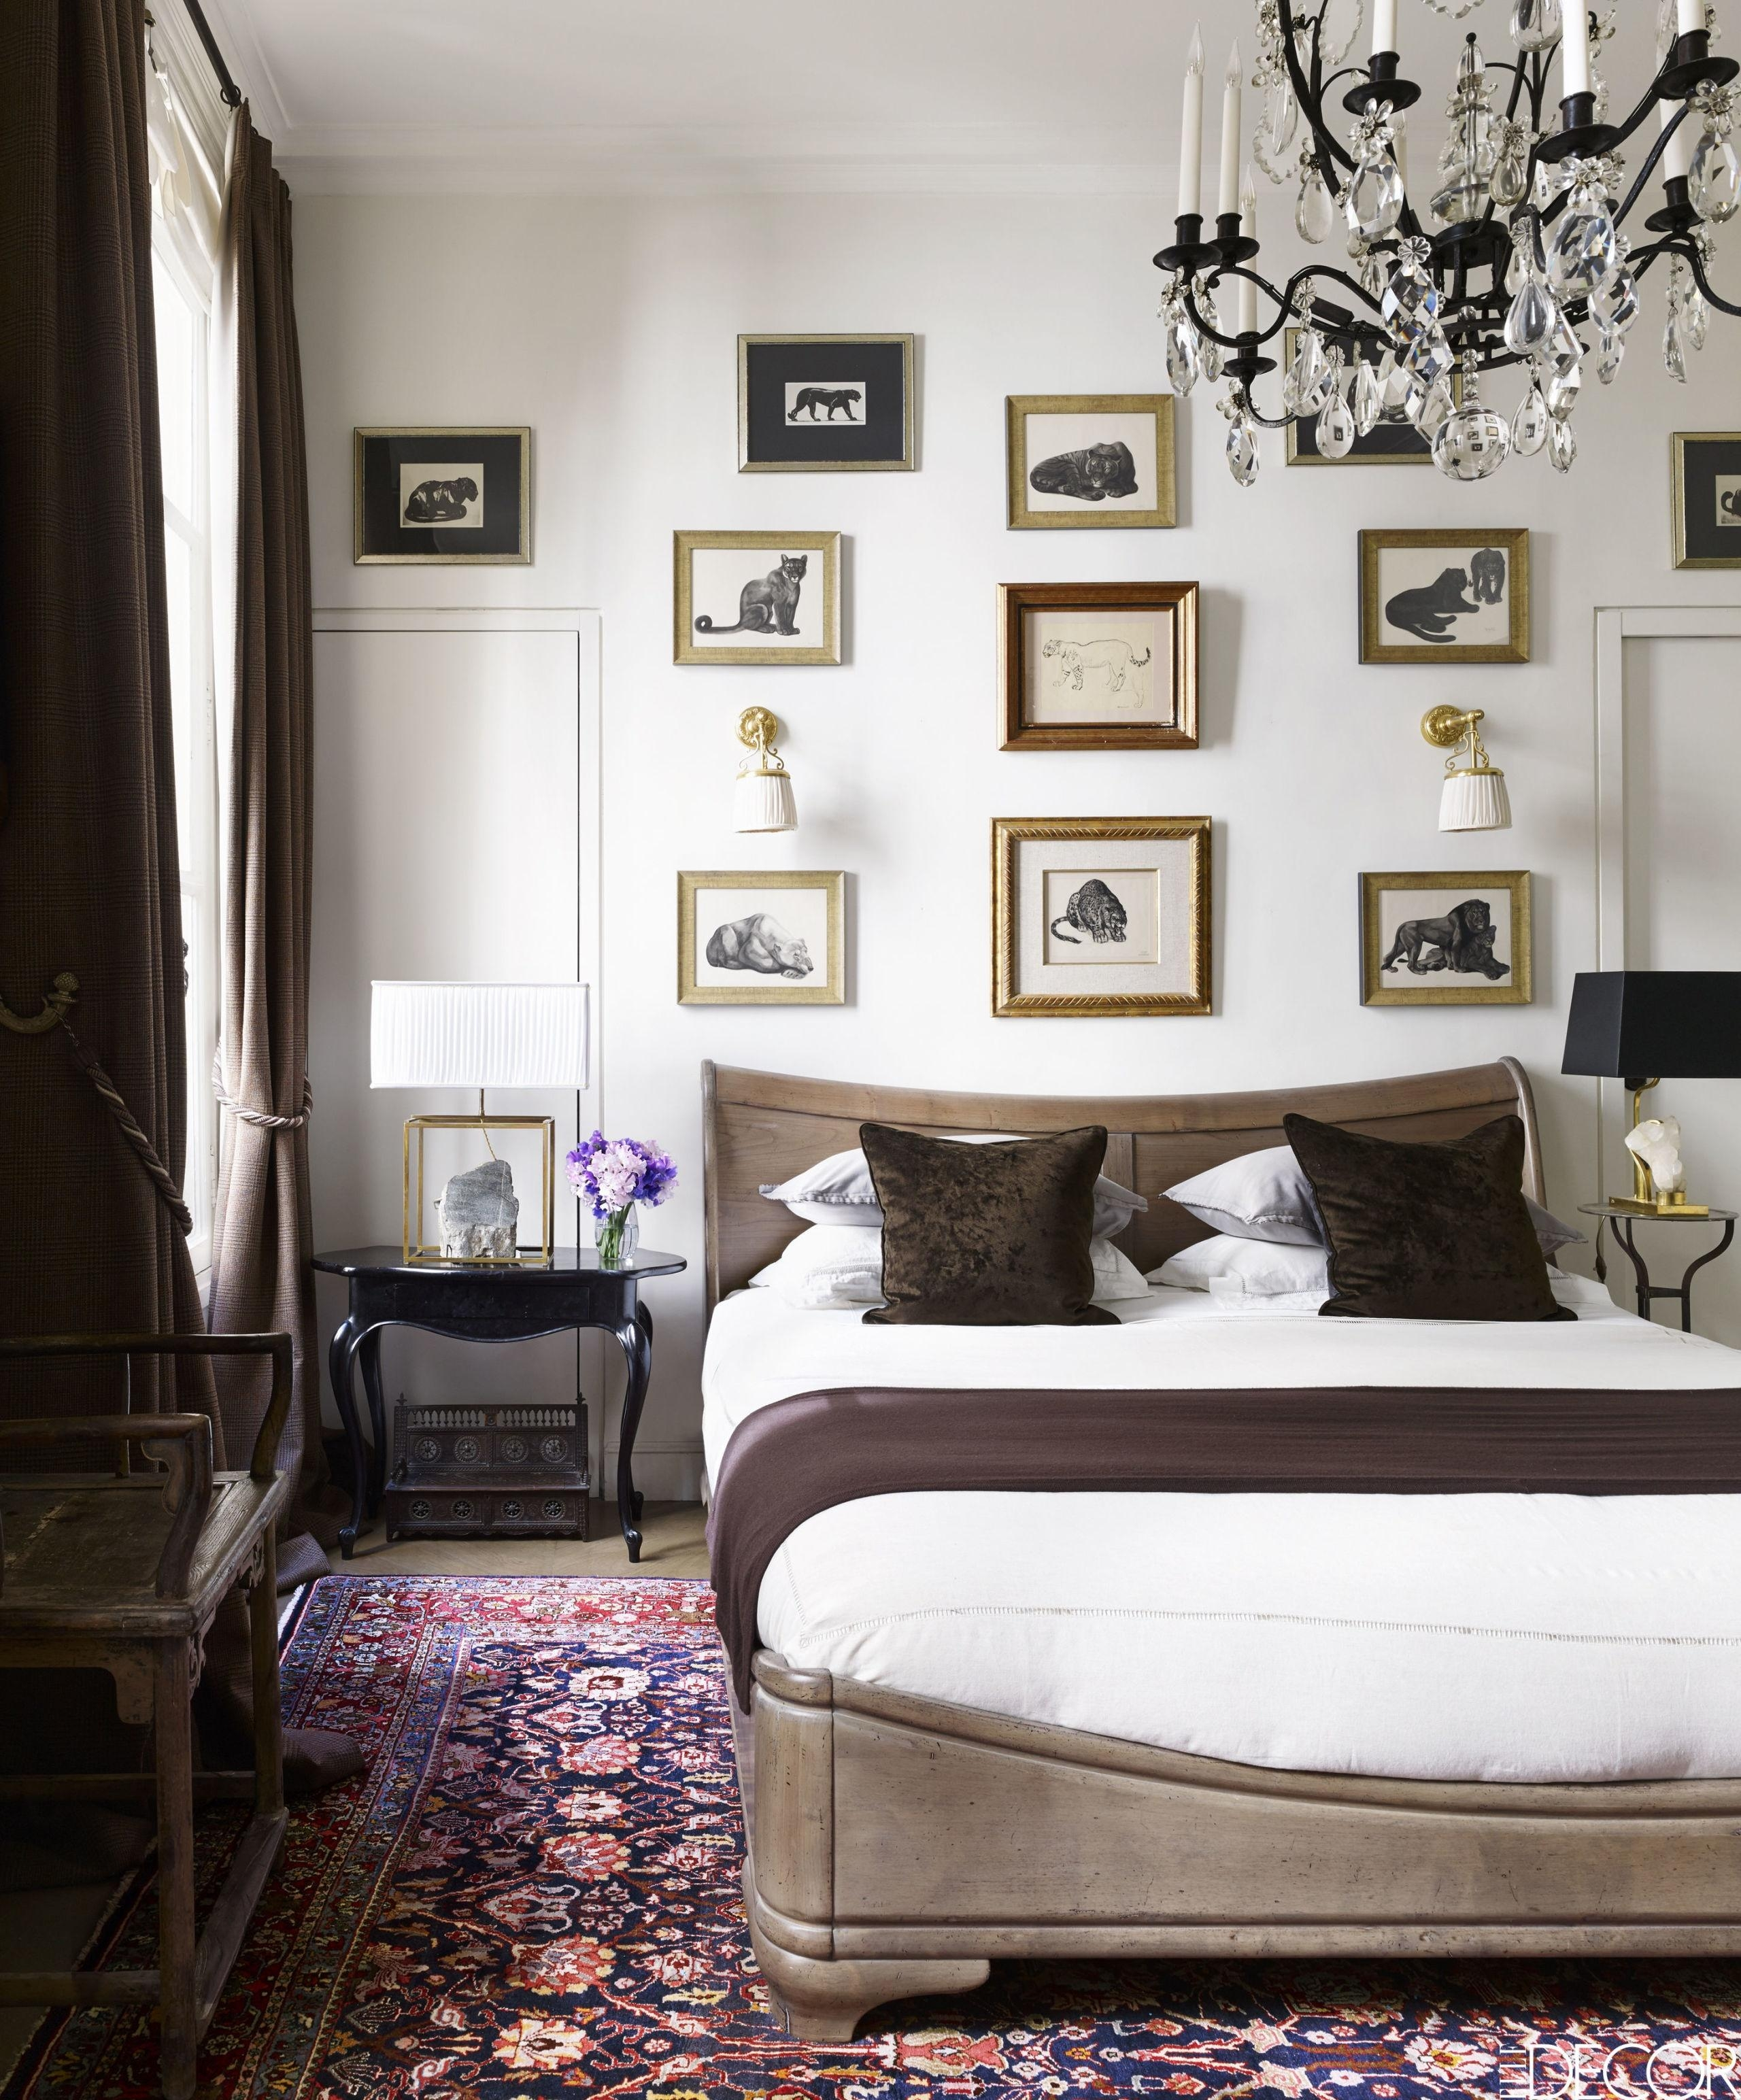 Best Wall Decor Ideas – Wall Decorations Inside Bed Wall Art (View 7 of 20)